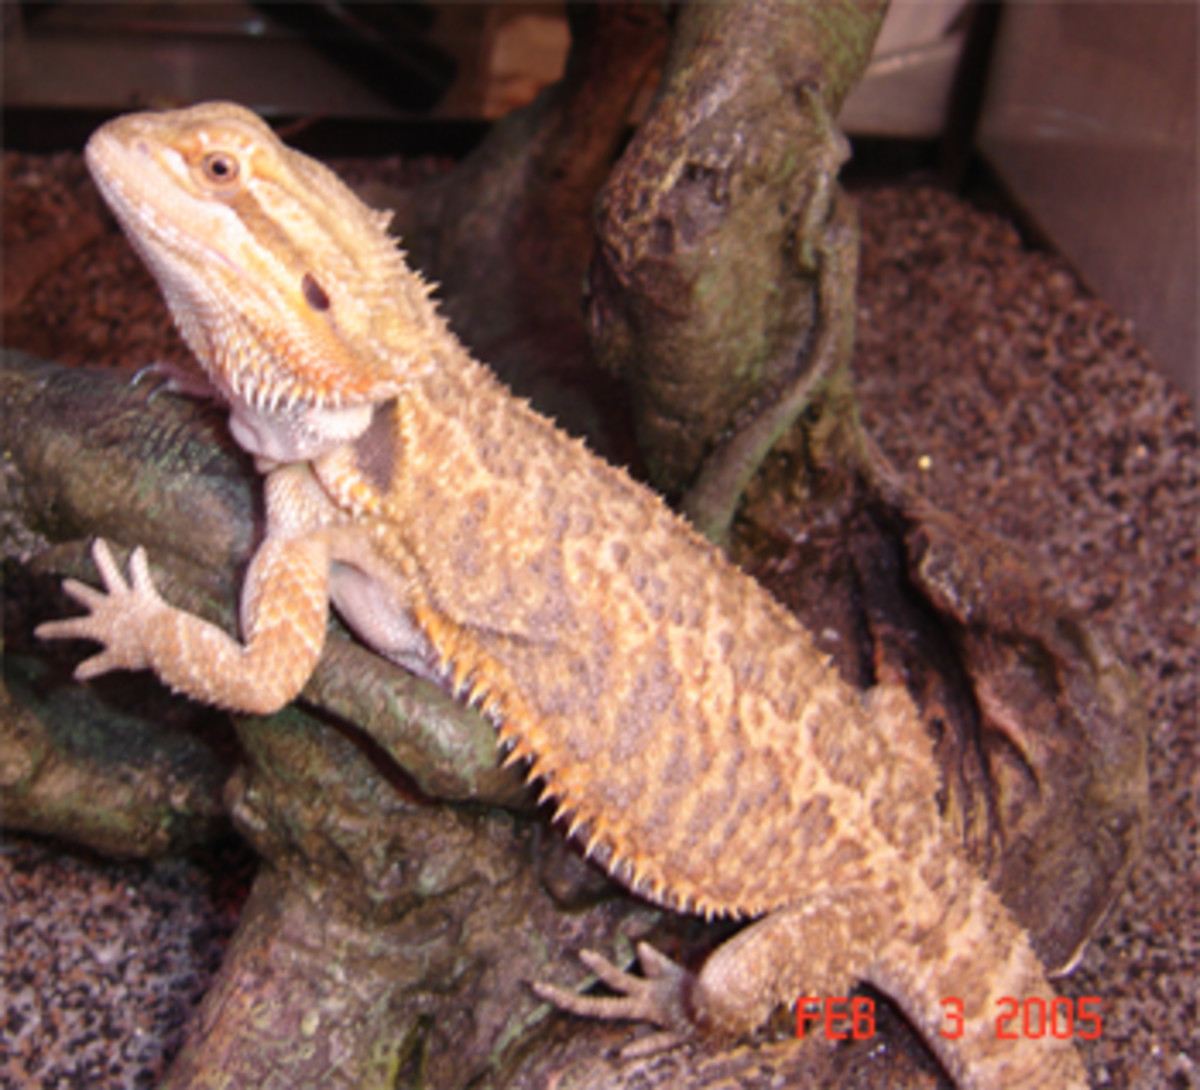 Female peach bearded dragon